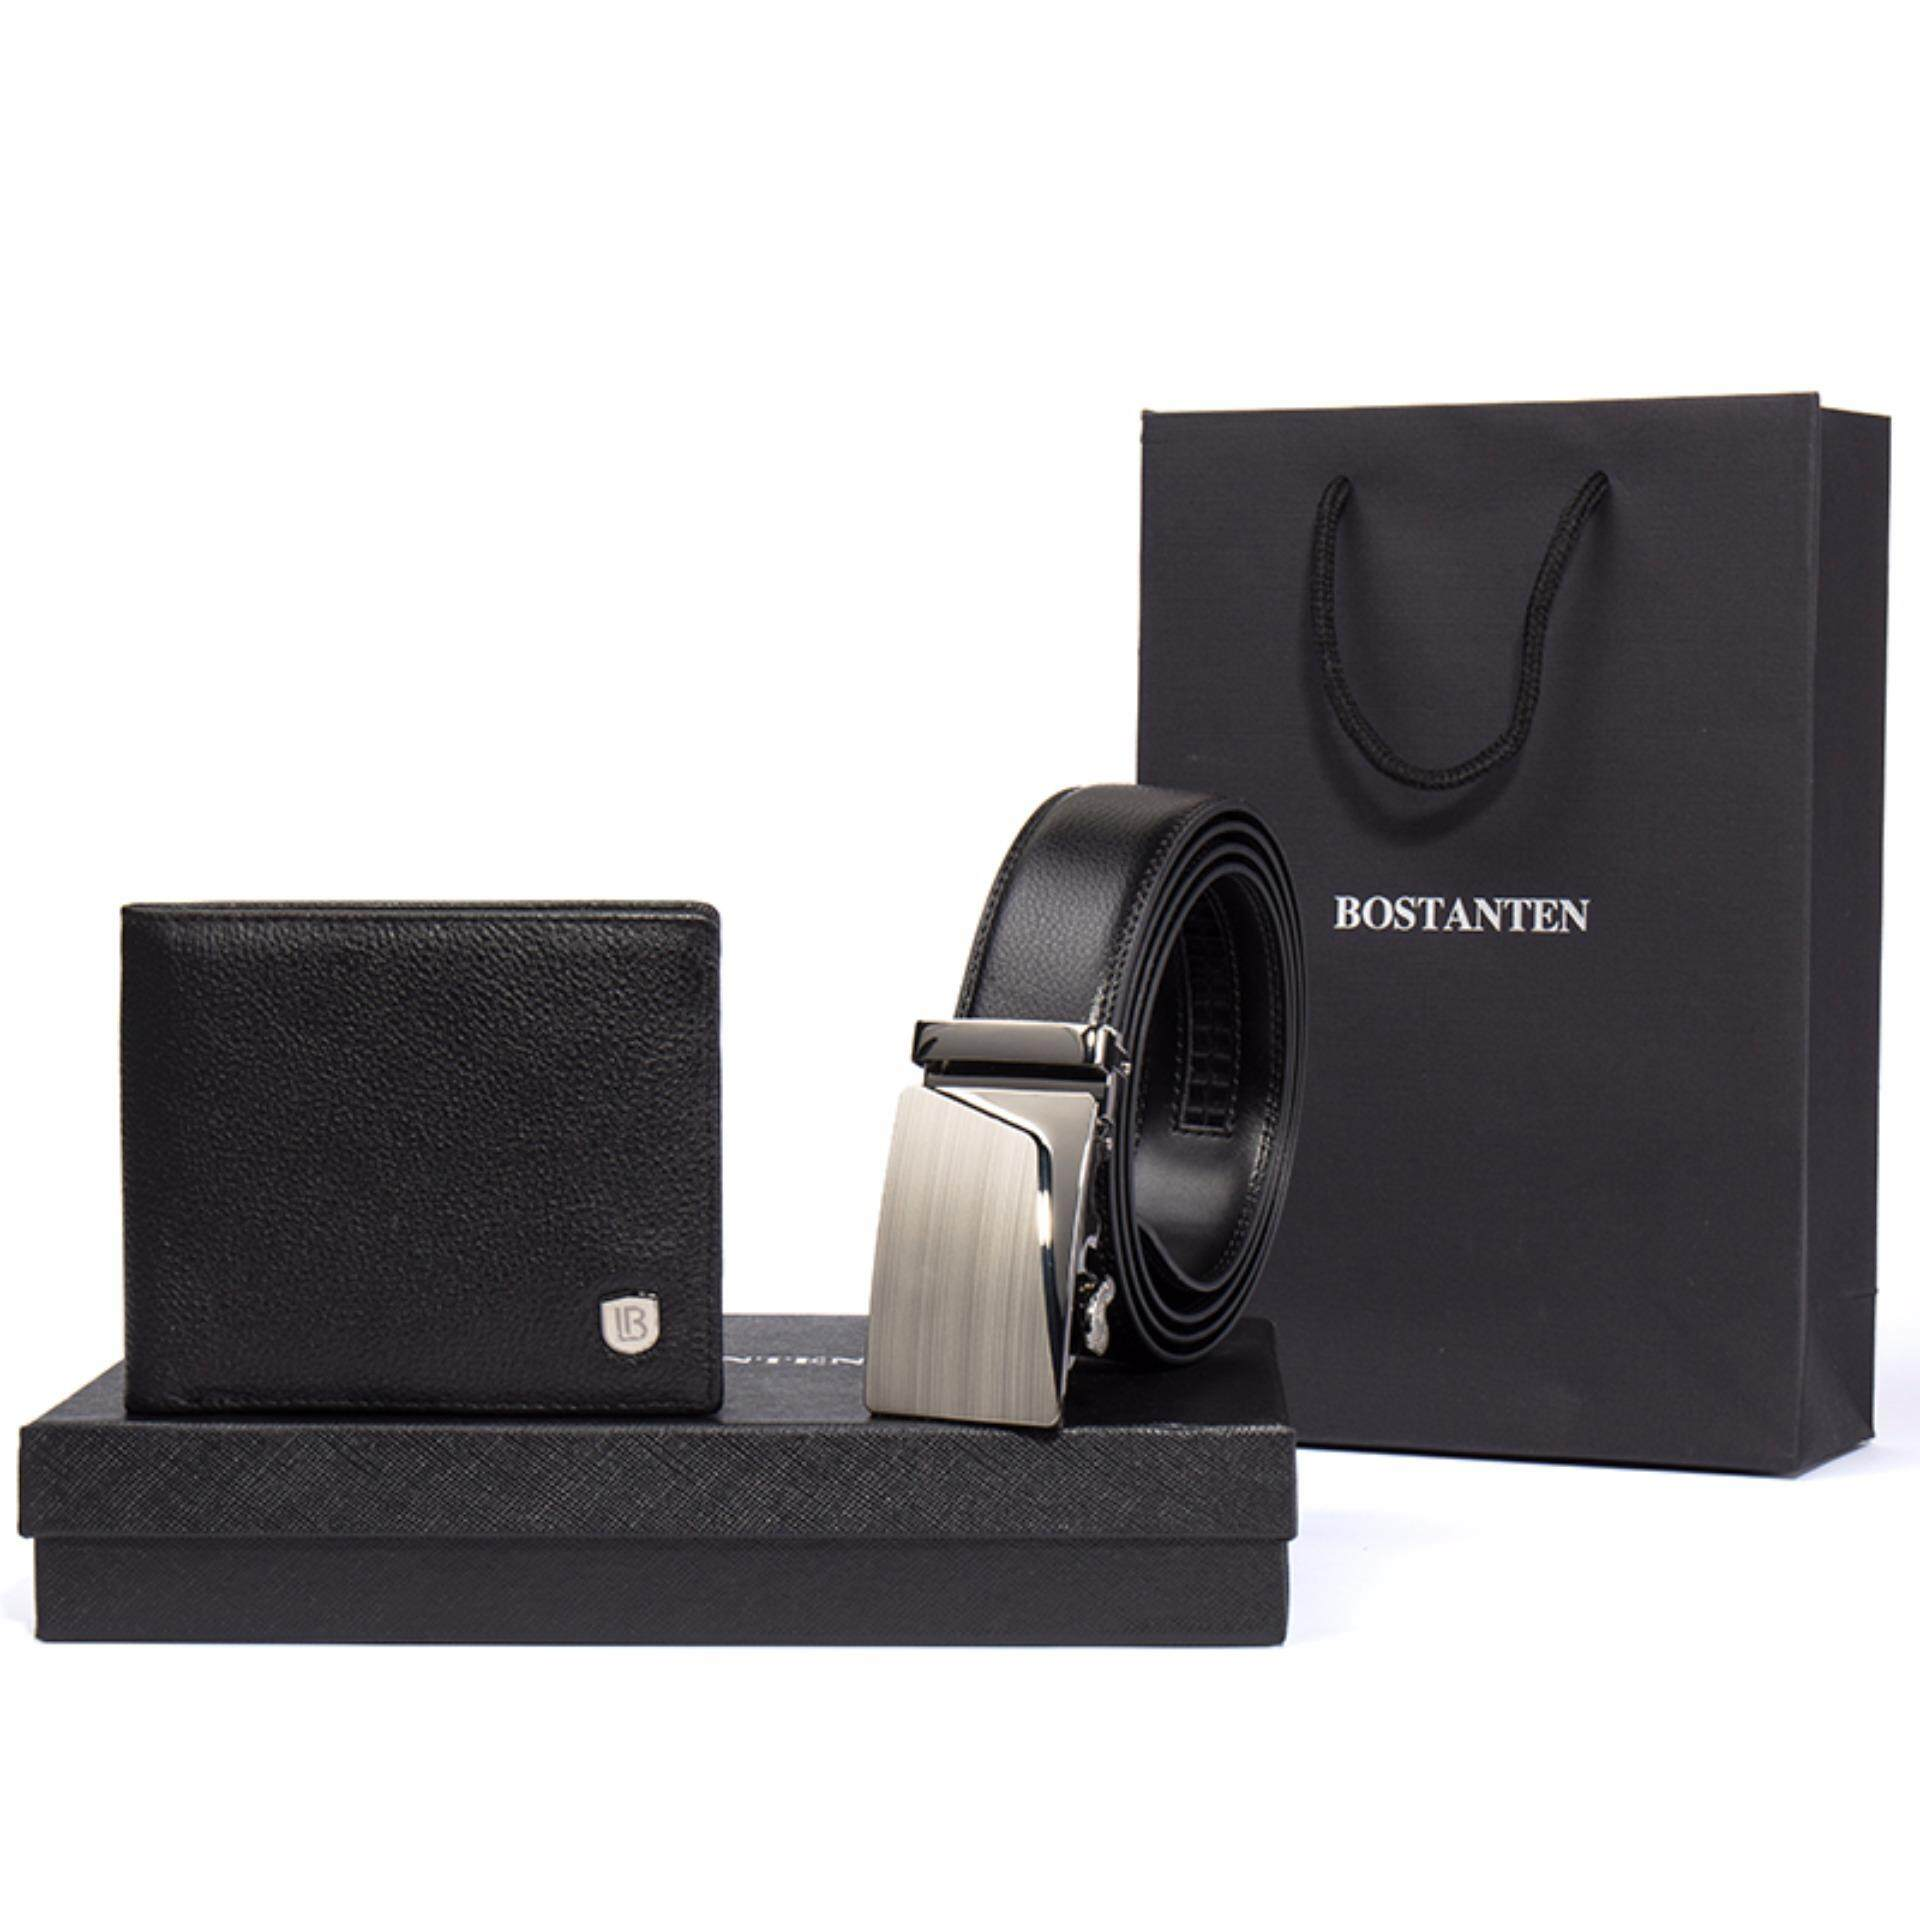 Bostanten Men's Genuine Leather Belts And Genuine Cowhide Leather Bifold Wallet Gift Box Black